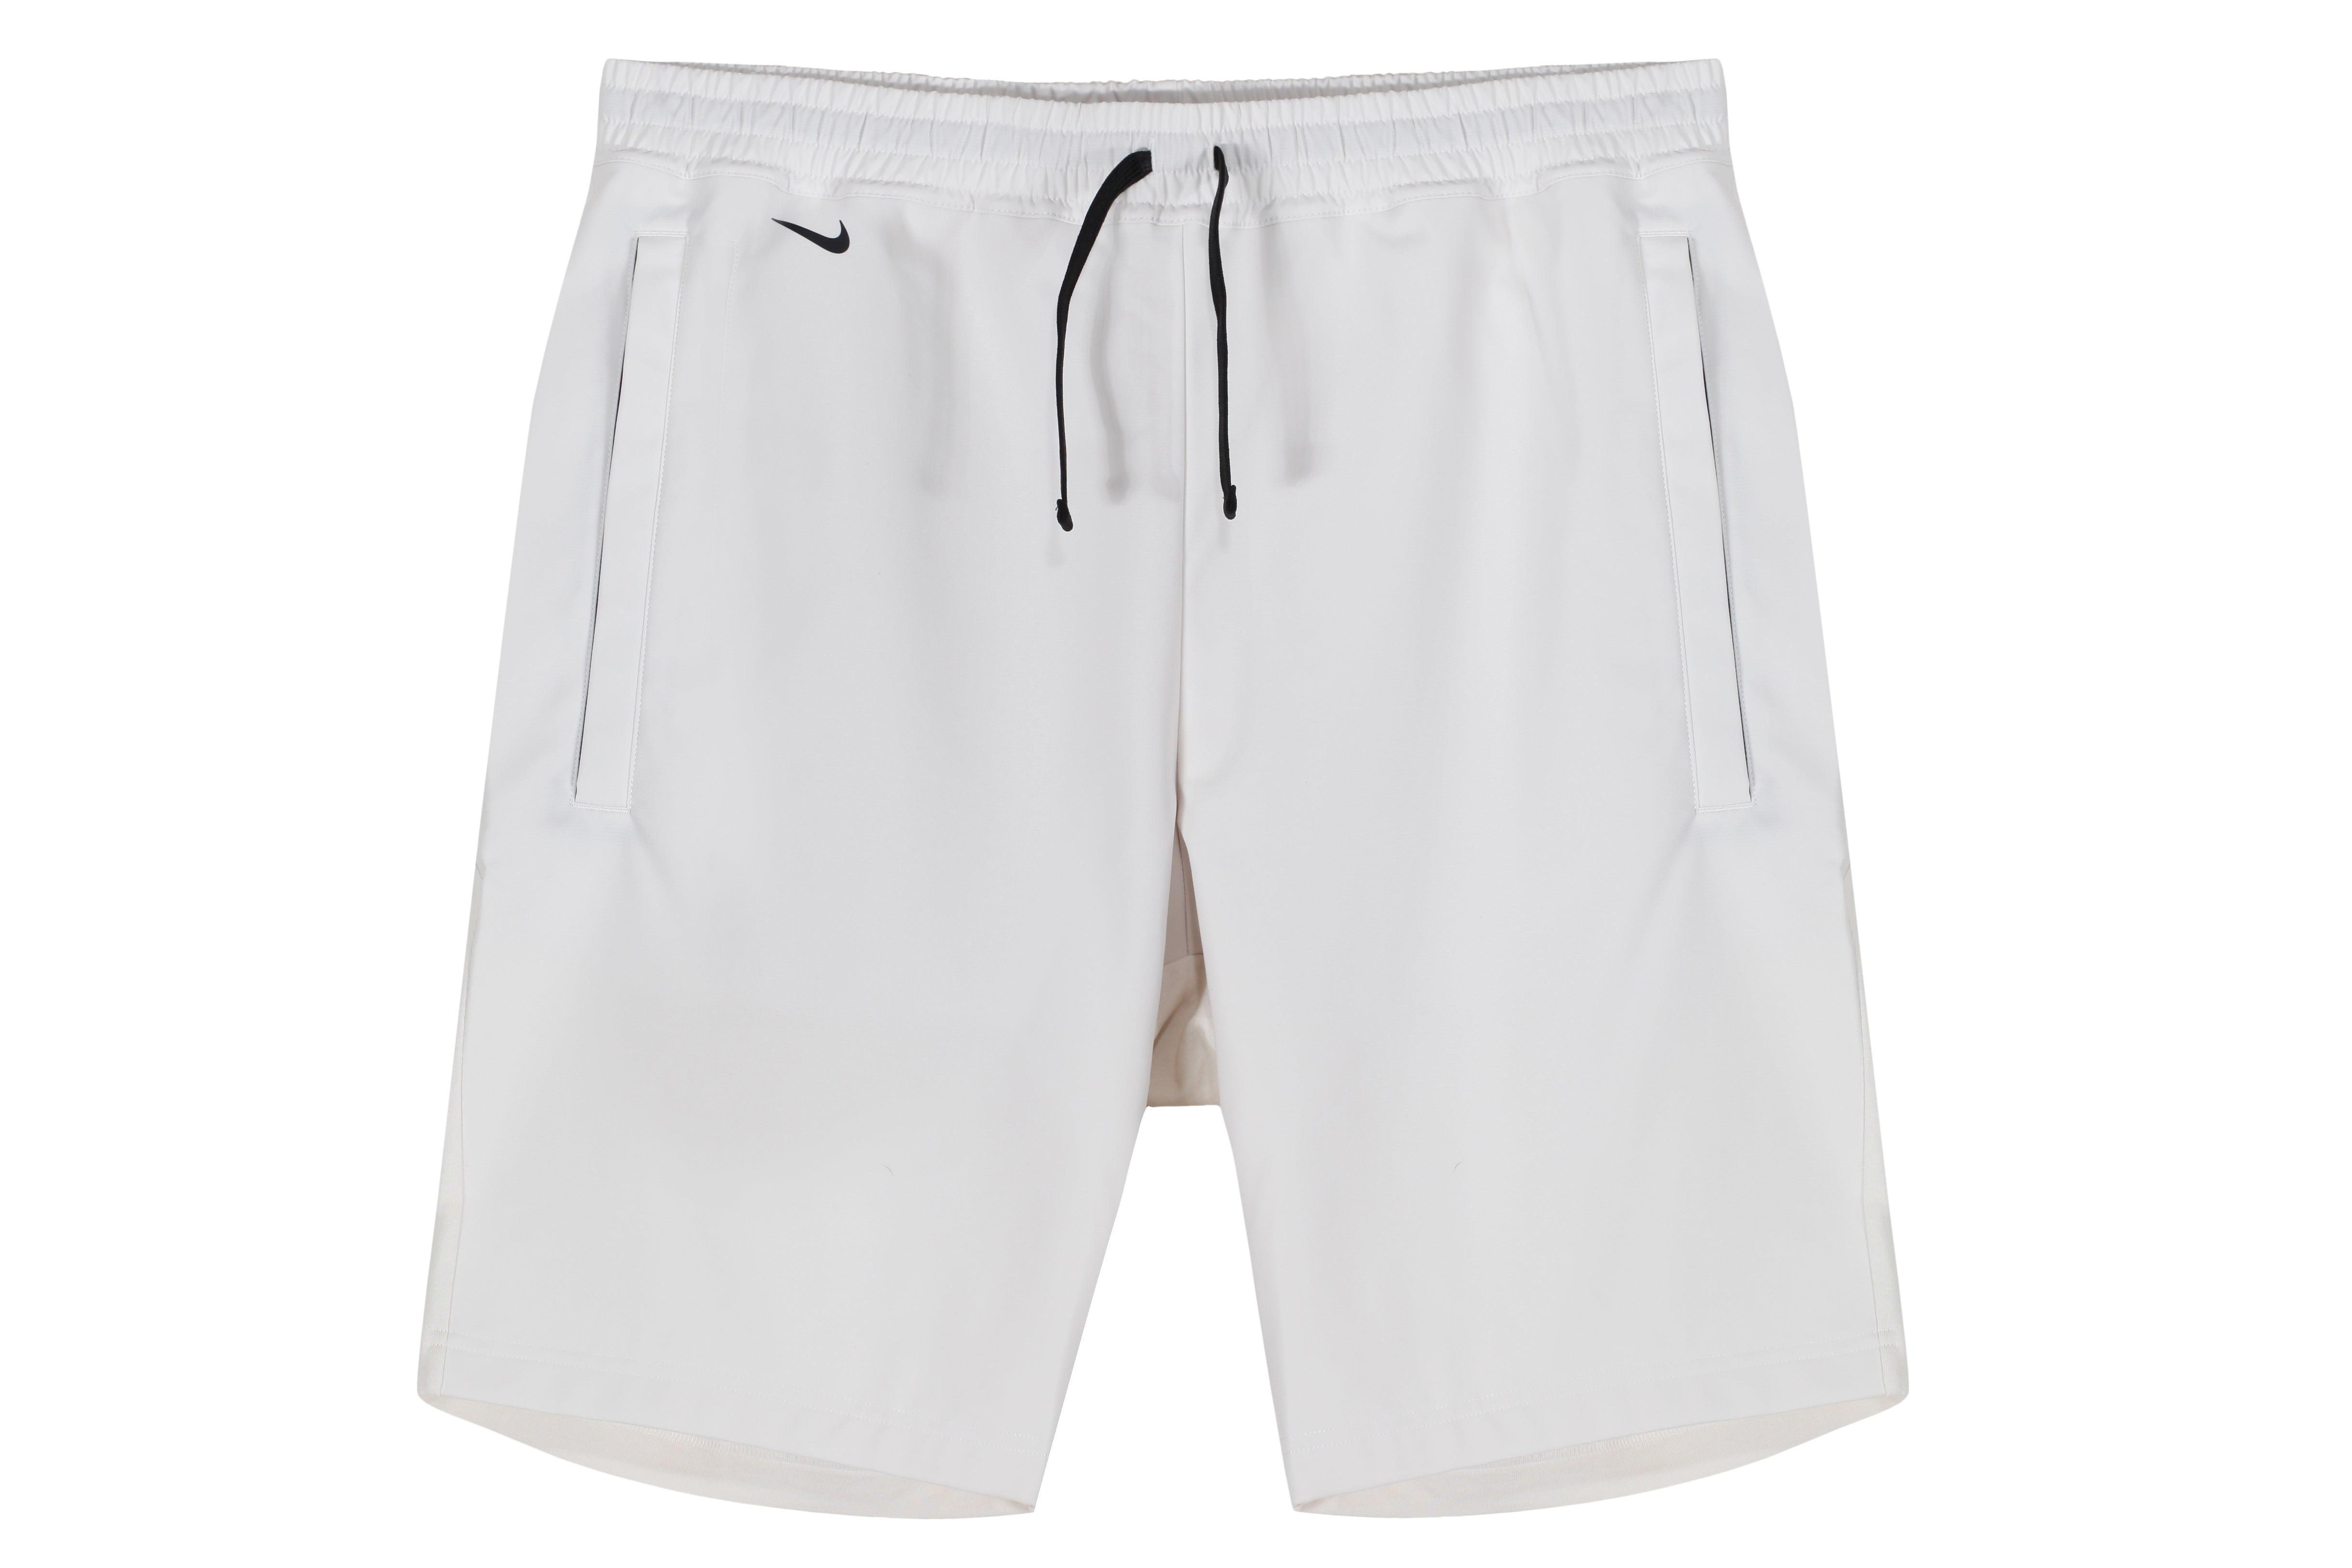 Nike Lab NRG AAE 2.0 3/4 Shorts